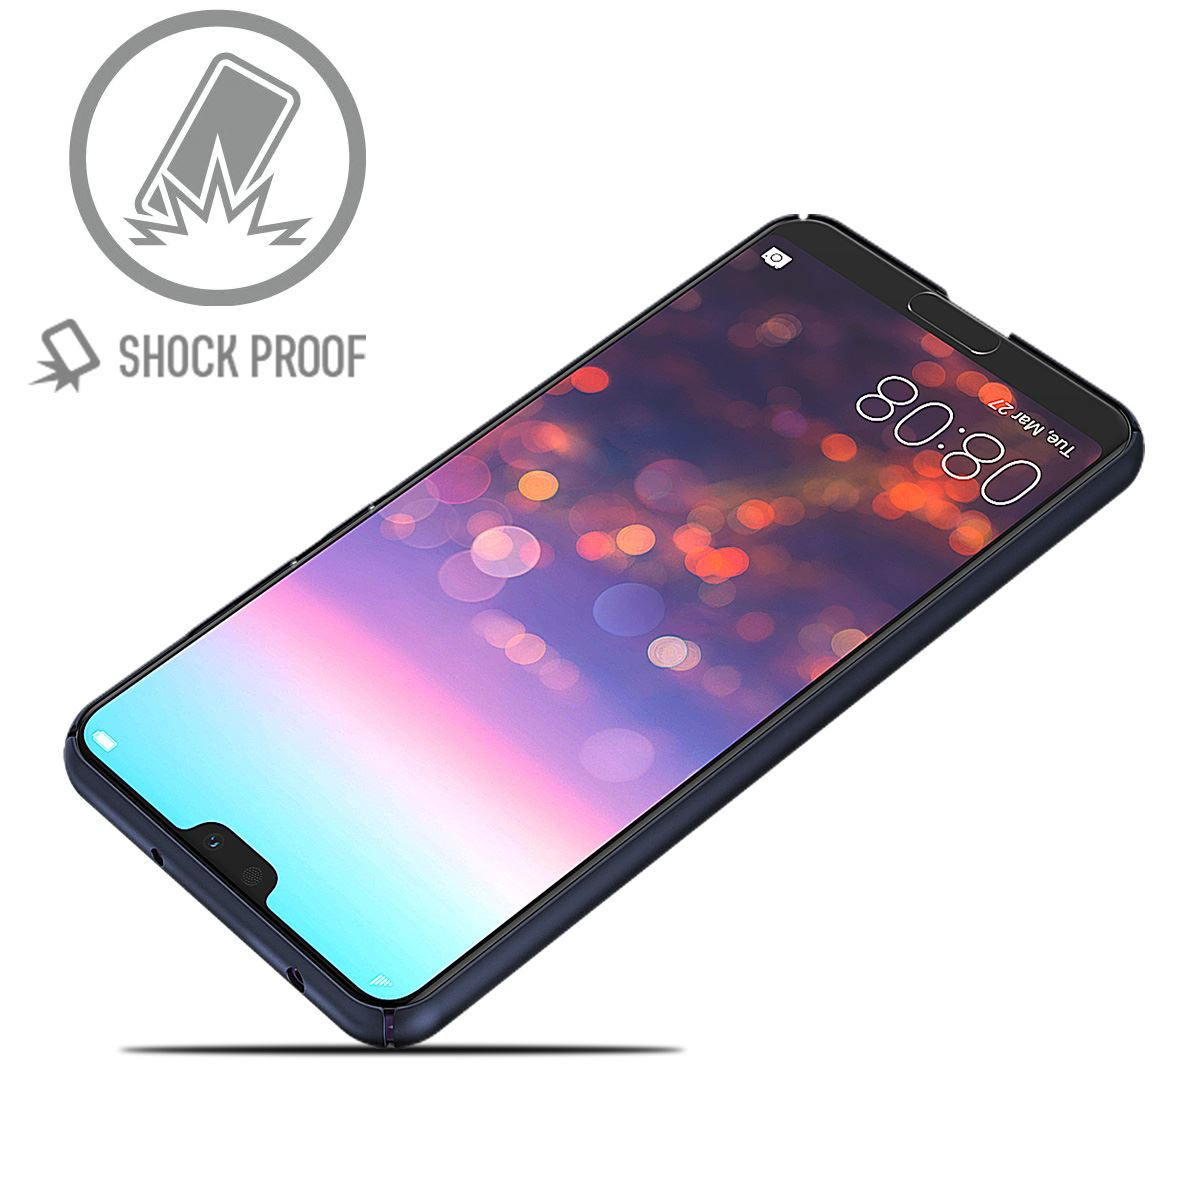 Luxury-Protective-Slim-Thin-Hard-Back-Case-Cover-For-Huawei-P20-Pro-P10-P-Smart thumbnail 43